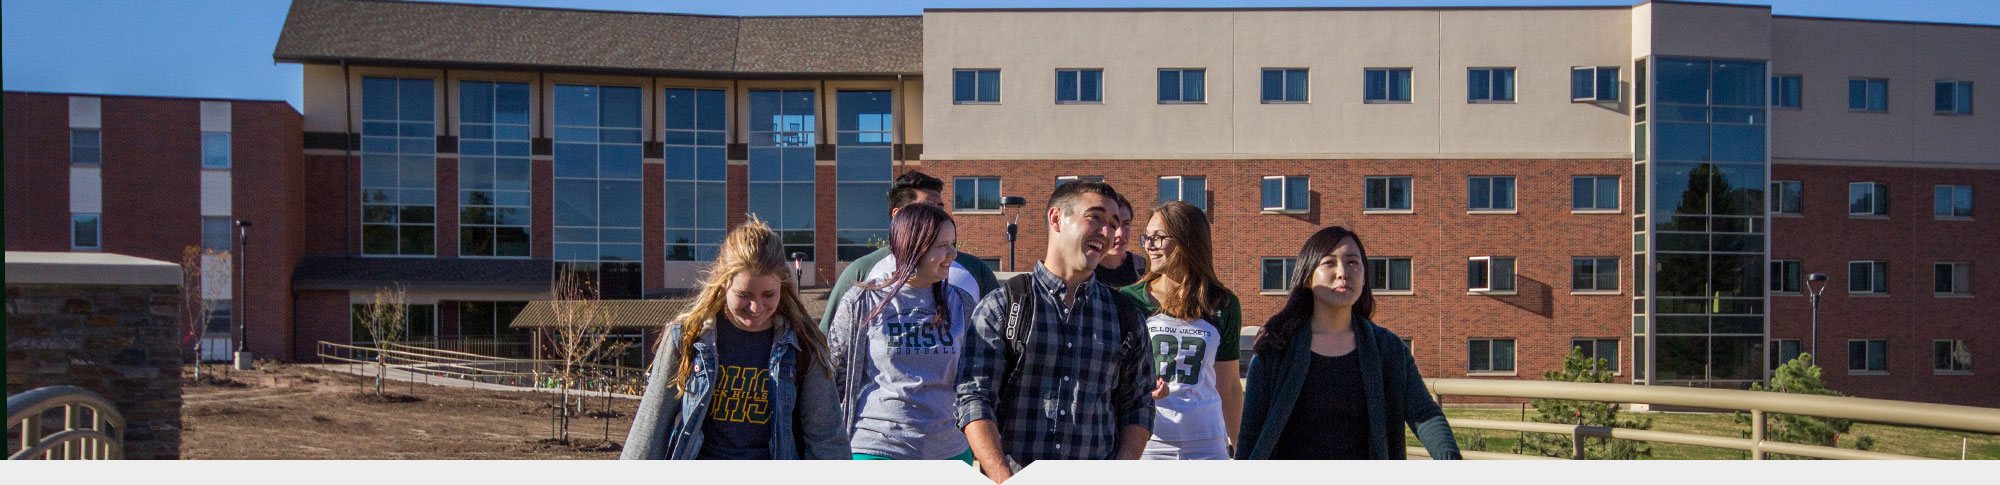 Learn more about the newest Residence Hall at BHSU.